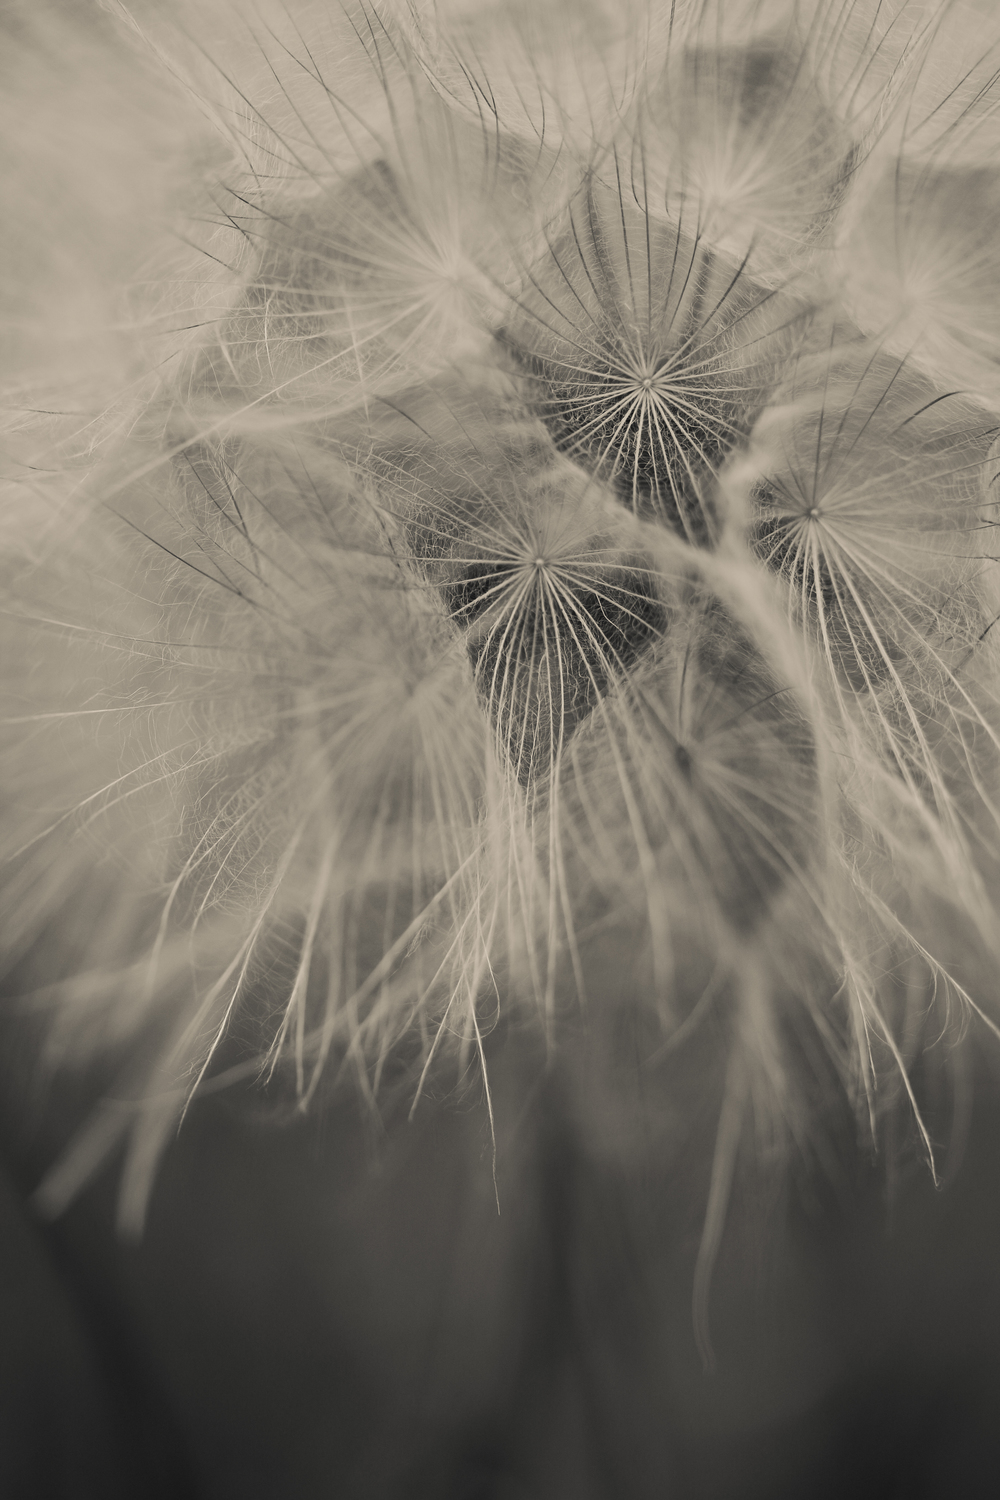 Dandelions really might be my new favorite flower to photograph. I'm obsessed.